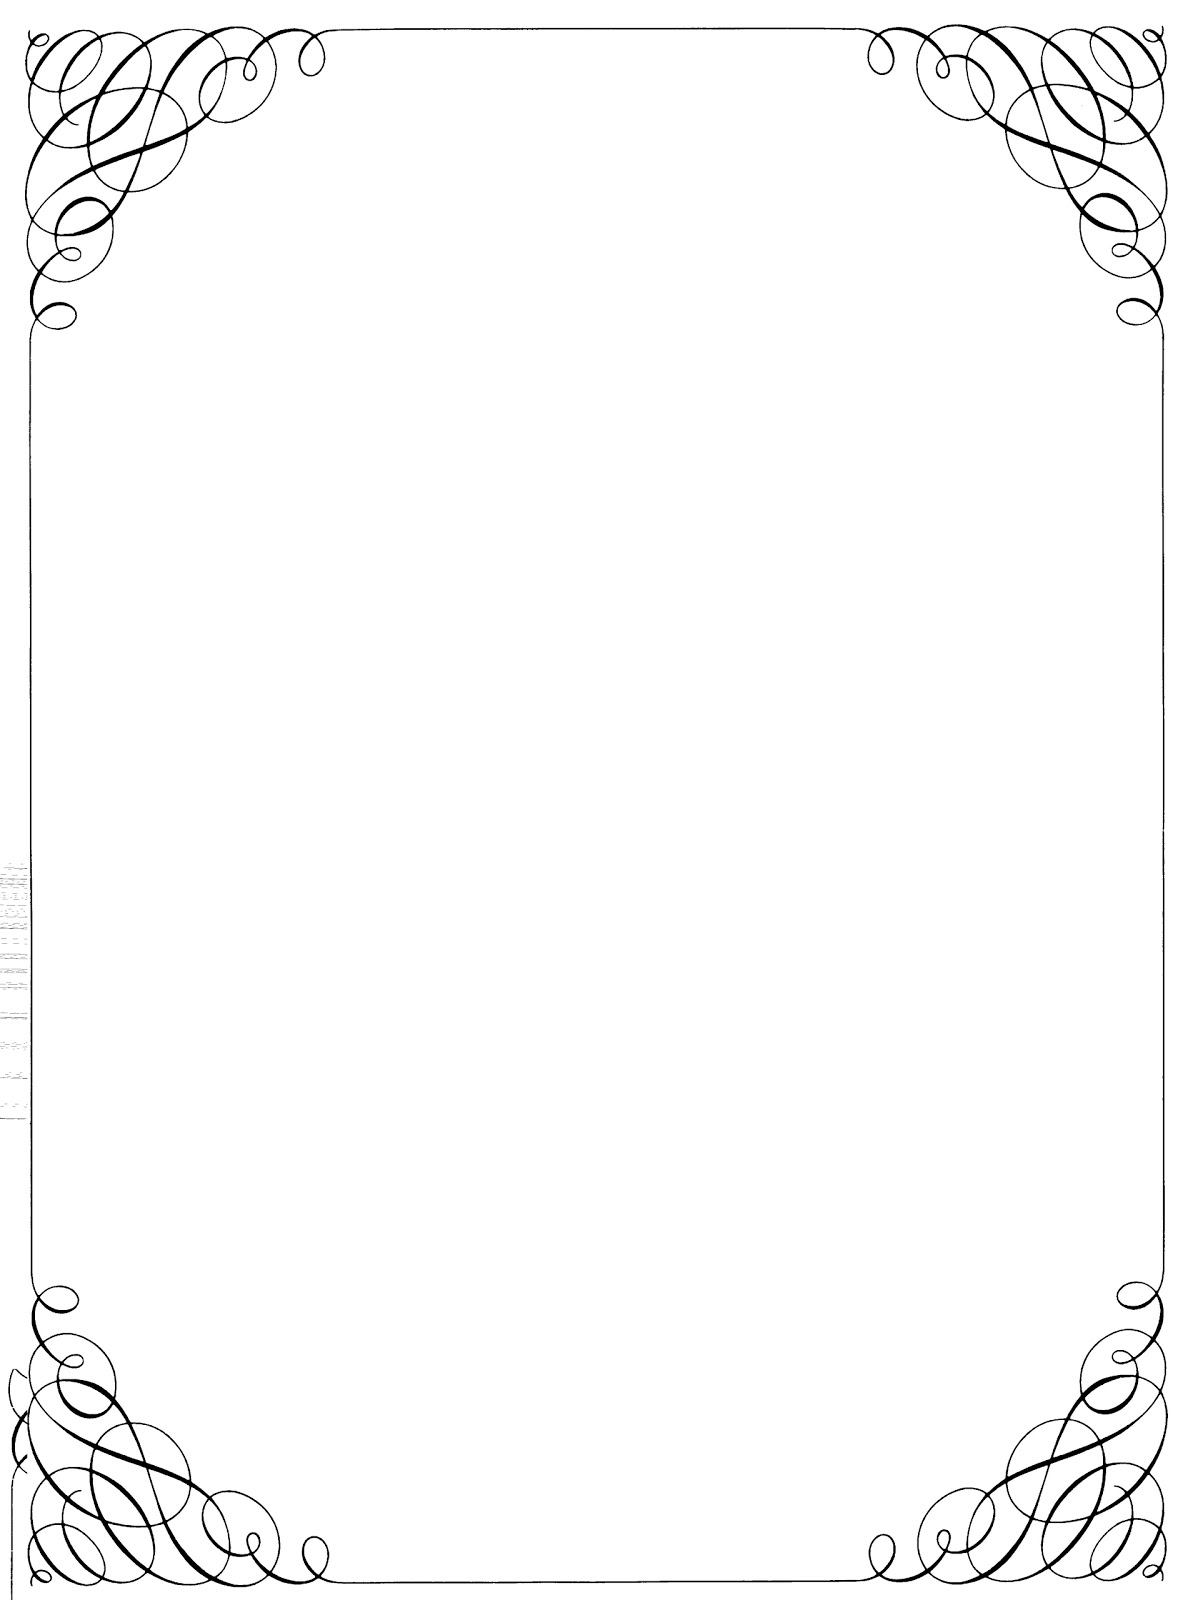 Black and white calligraphy borders clipart suggest